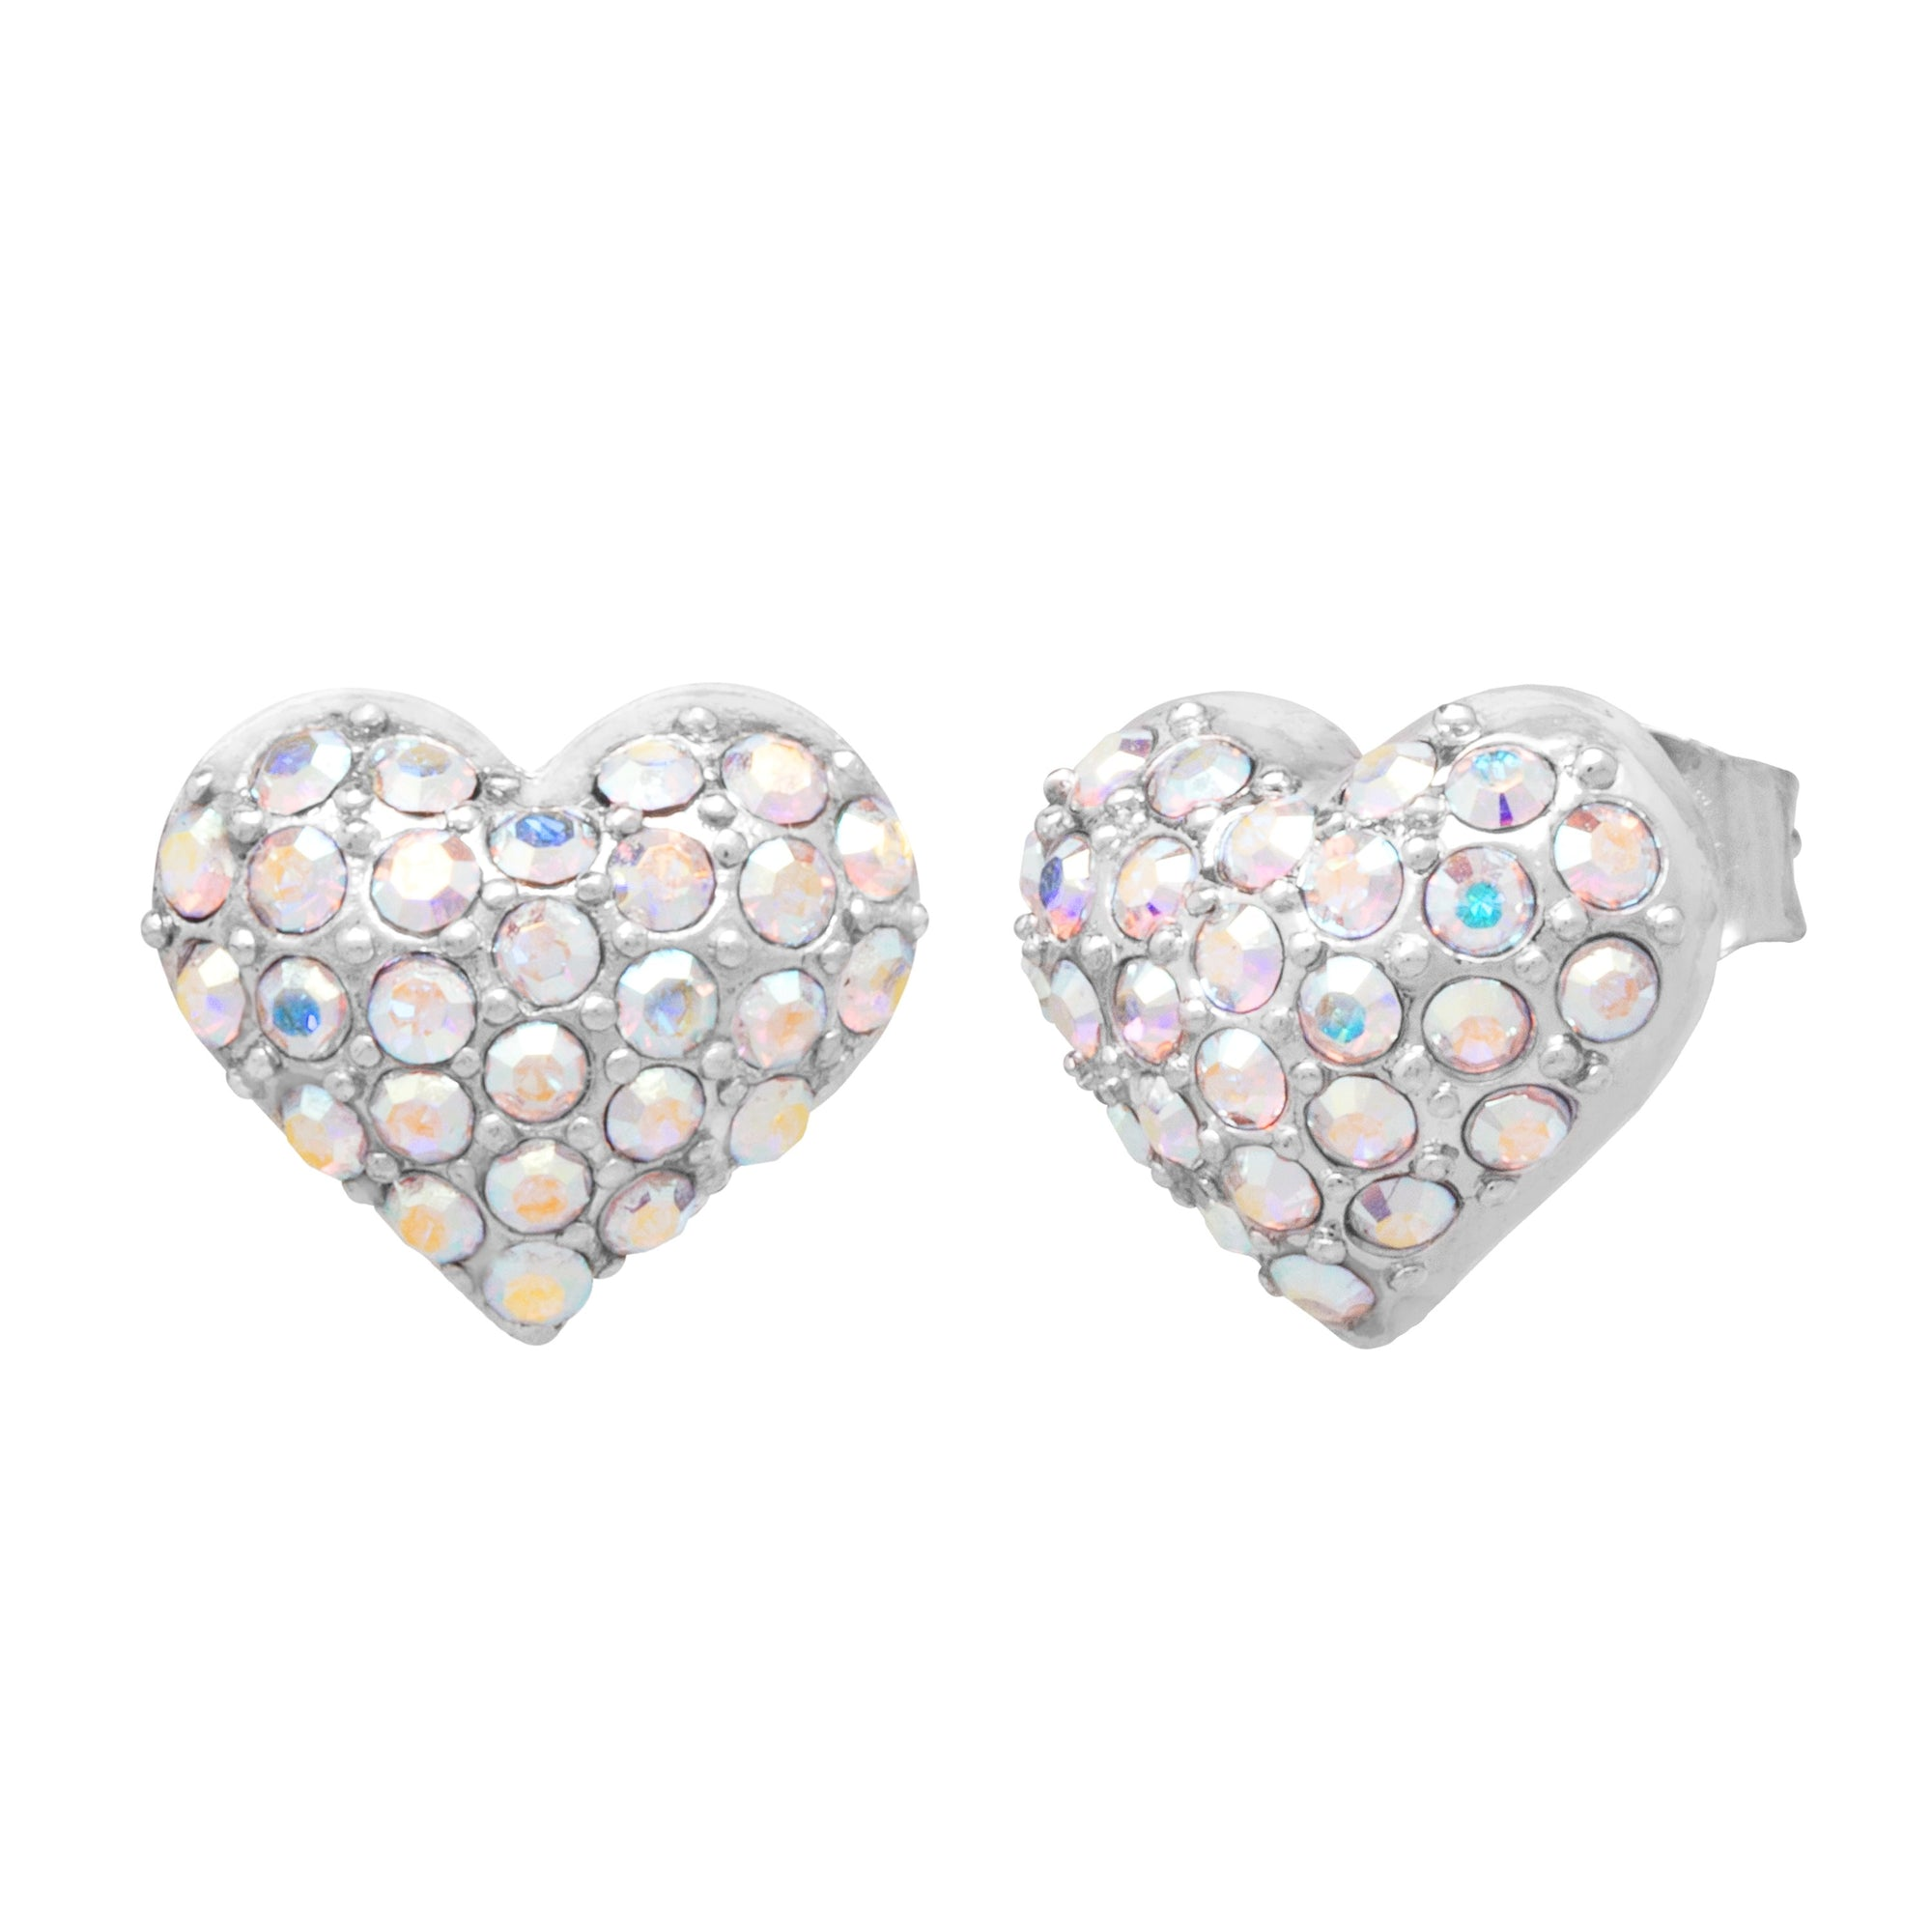 Heart Pavé Earrings forevercrystals